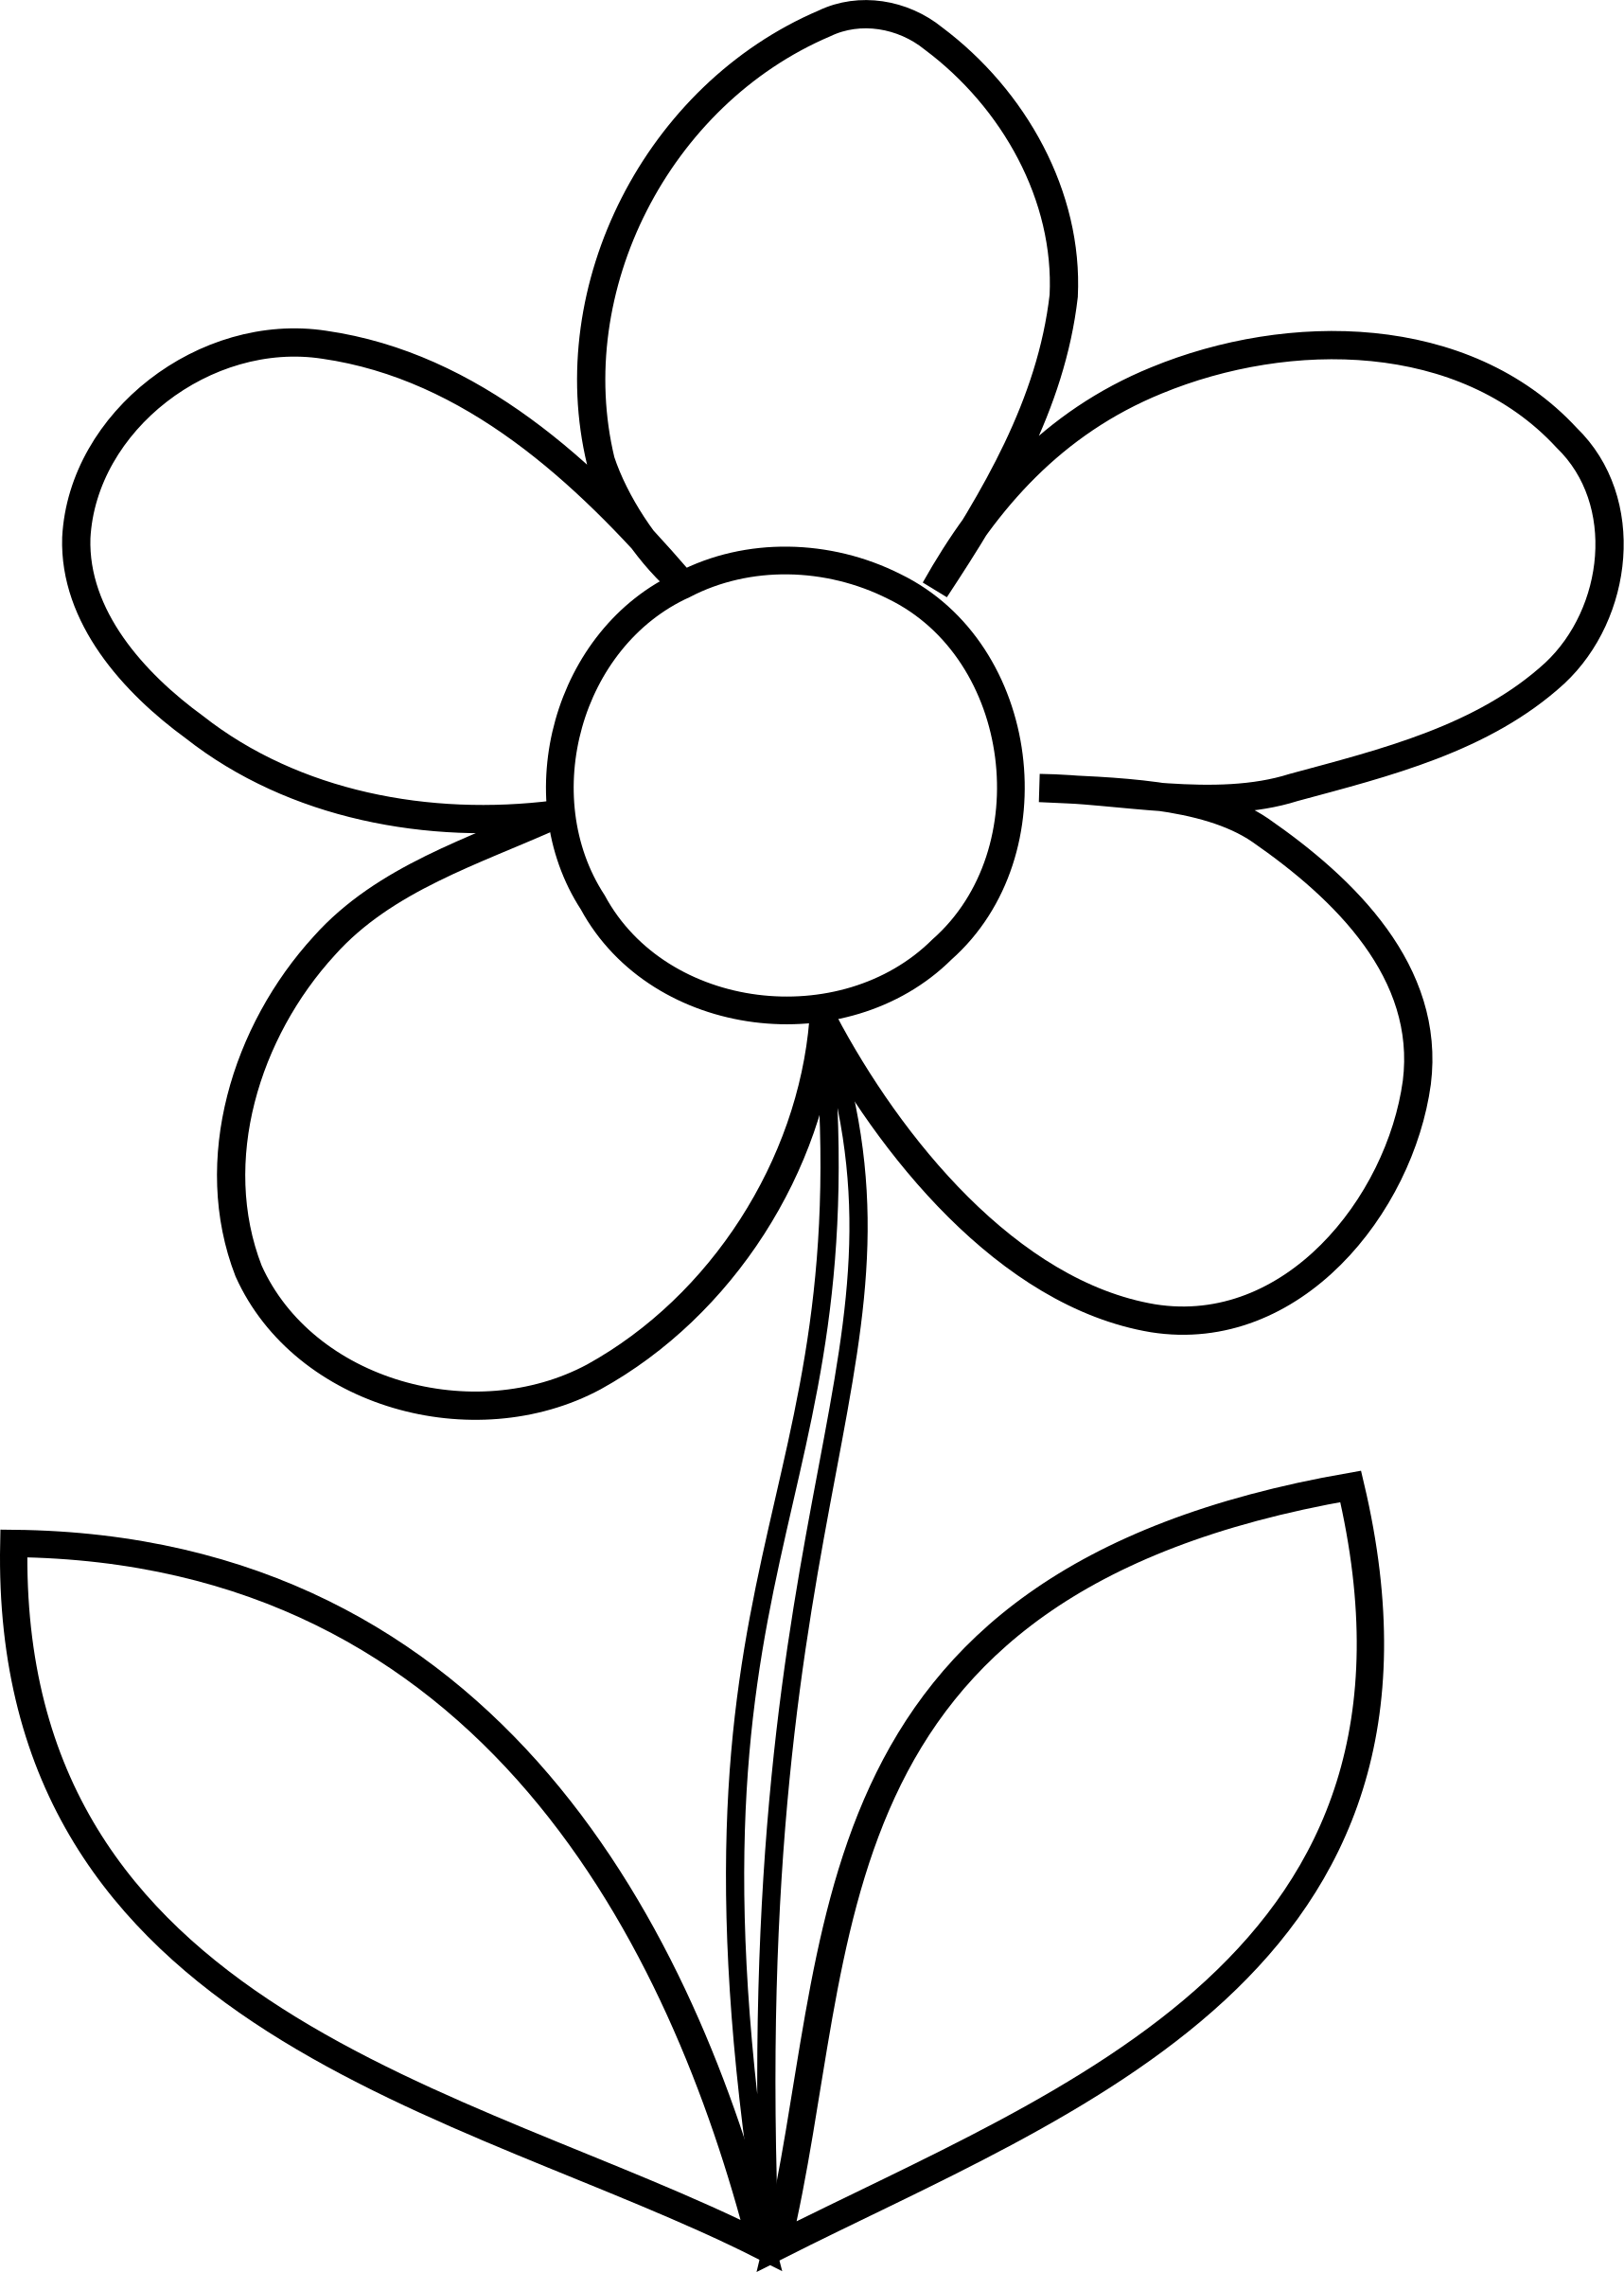 outline pictures of flowers for colouring flower outline coloring page free stock photo public of colouring for pictures outline flowers